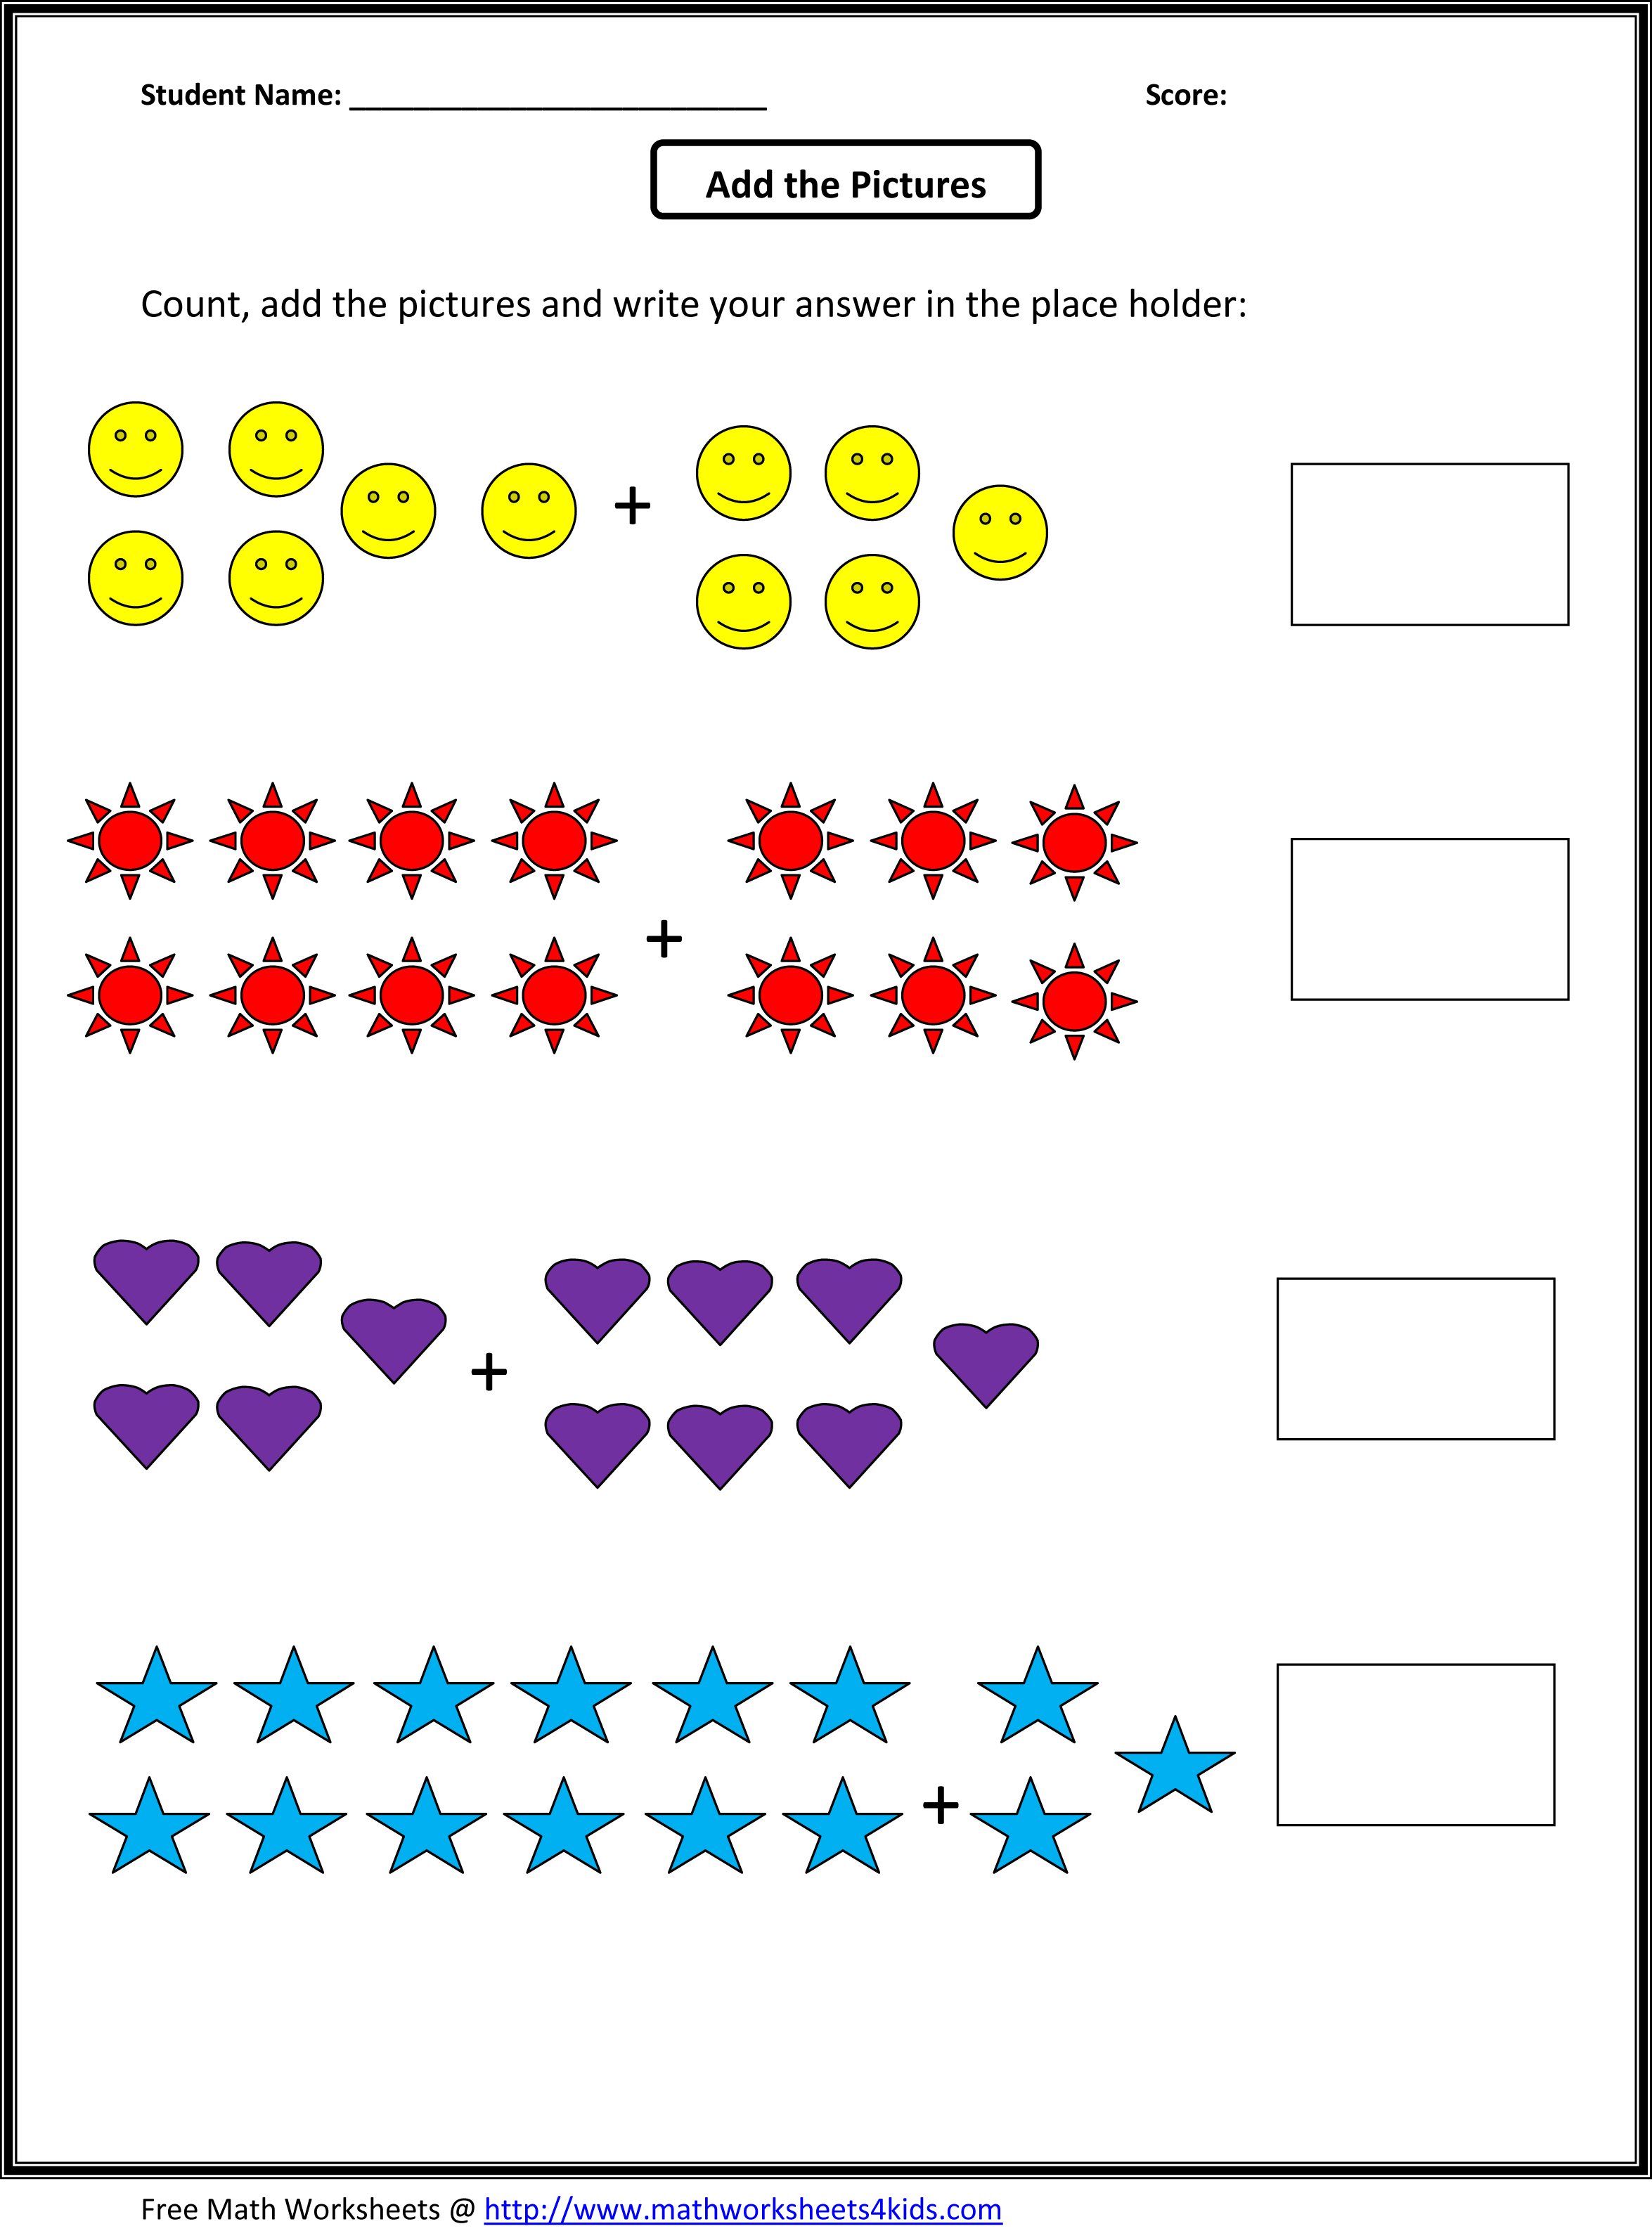 Weirdmailus  Picturesque Grade  Maths Worksheet  Reocurent With Exquisite Math Worksheets For St Grade Free  Reocurent With Agreeable Possessive Nouns Worksheets Rd Grade Also Free Worksheets For Second Grade In Addition Sight Word Sentences Worksheets And Vapor Pressure Worksheet As Well As Worksheets For Fourth Grade Additionally Capital Gains Tax Worksheet  From Reocurentcom With Weirdmailus  Exquisite Grade  Maths Worksheet  Reocurent With Agreeable Math Worksheets For St Grade Free  Reocurent And Picturesque Possessive Nouns Worksheets Rd Grade Also Free Worksheets For Second Grade In Addition Sight Word Sentences Worksheets From Reocurentcom